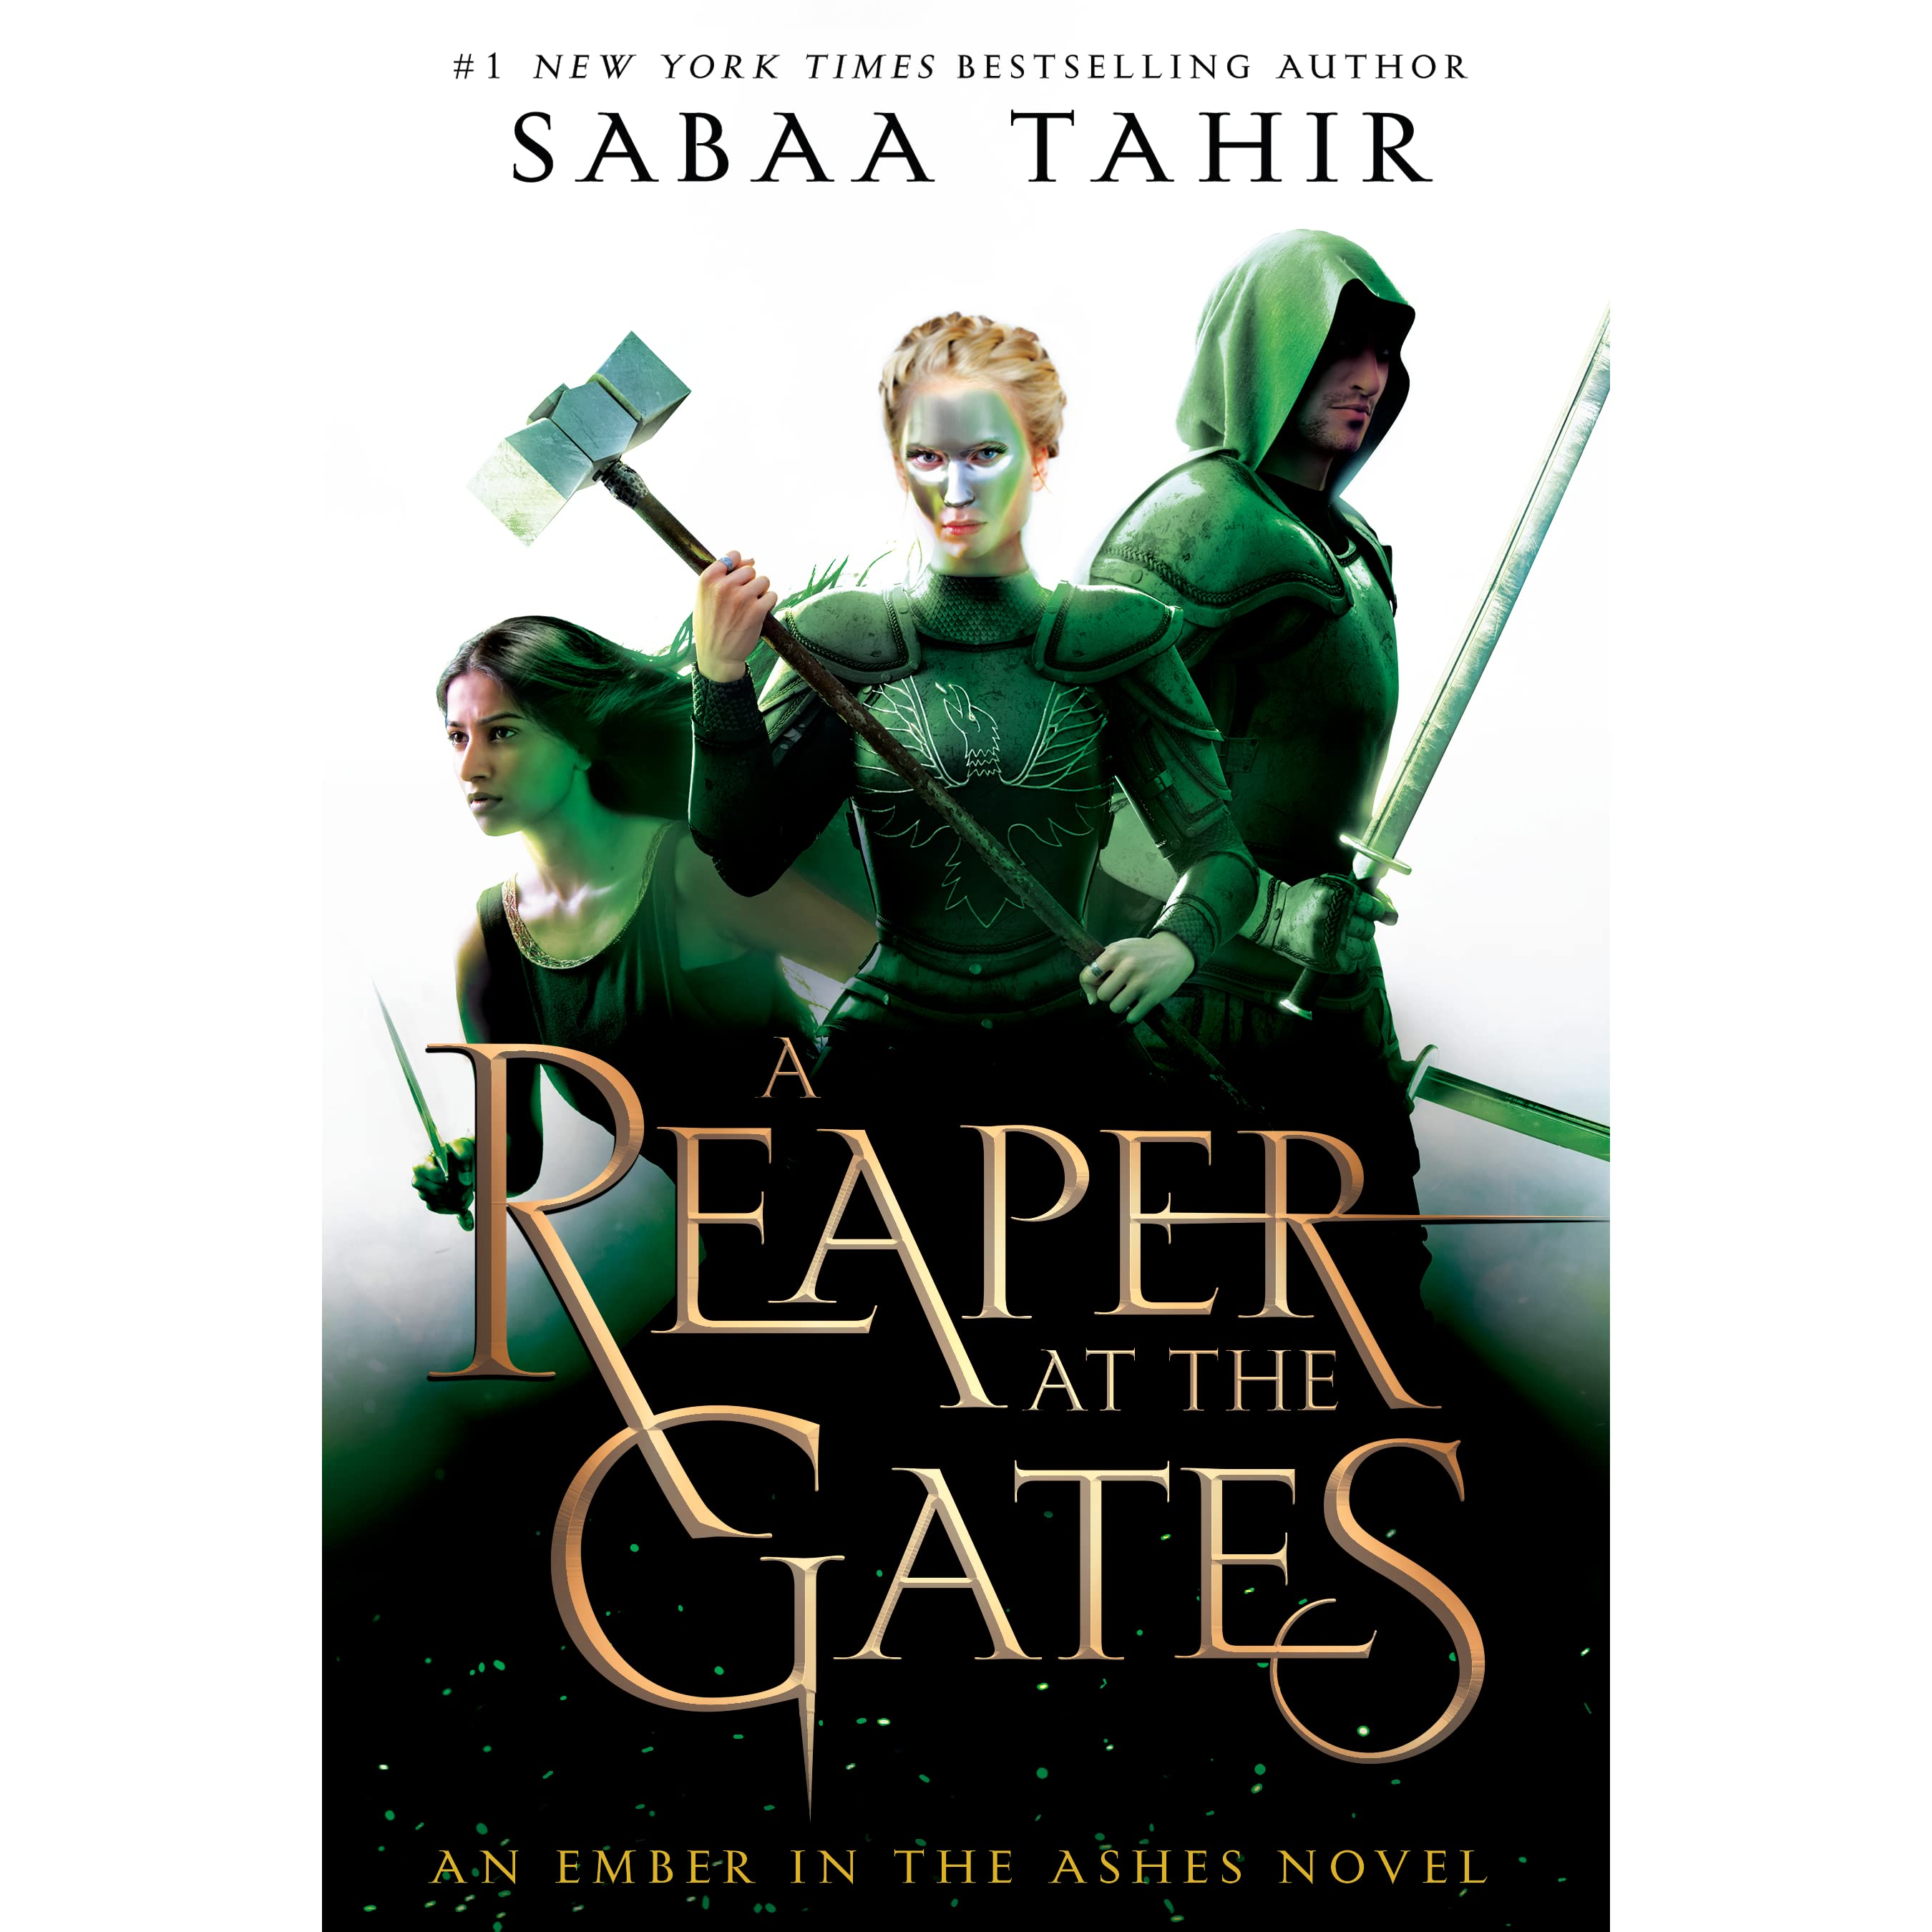 A Reaper at the Gates (An Ember in the Ashes, #3) by Sabaa Tahir